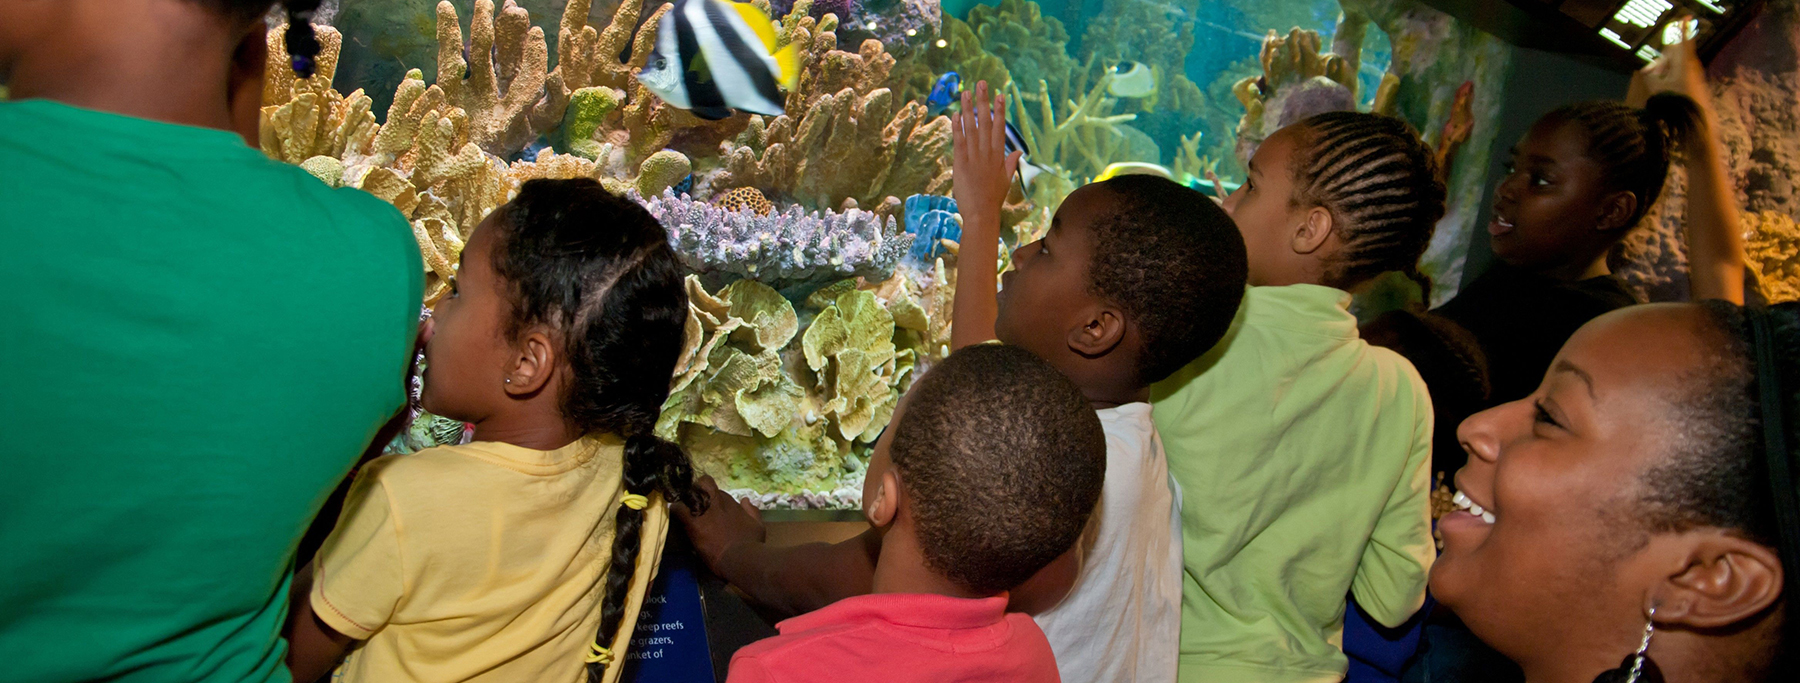 Visitors to the New England Aquarium watch tropical fish swimming through a Pacific Coral exhibit. (Photo: S. Cheng)